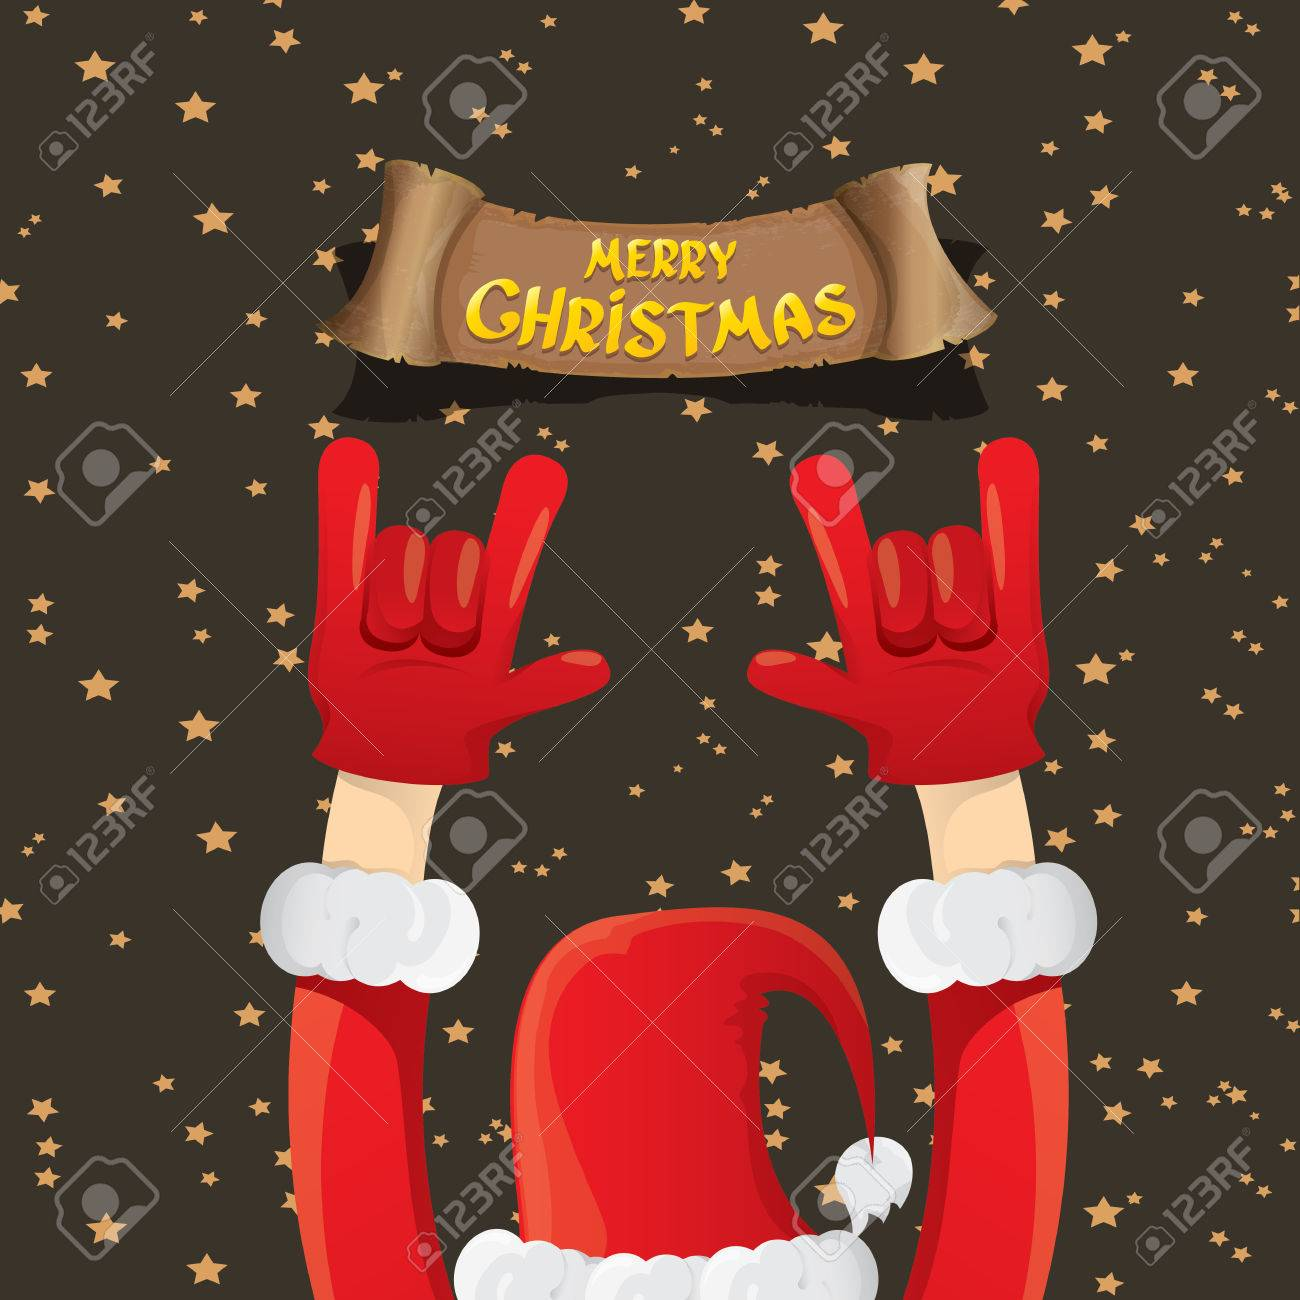 Rock n roll poster design - Santa Claus Hand Rock N Roll Gesture Icon Illustration Christmas Rock N Roll Concert Poster